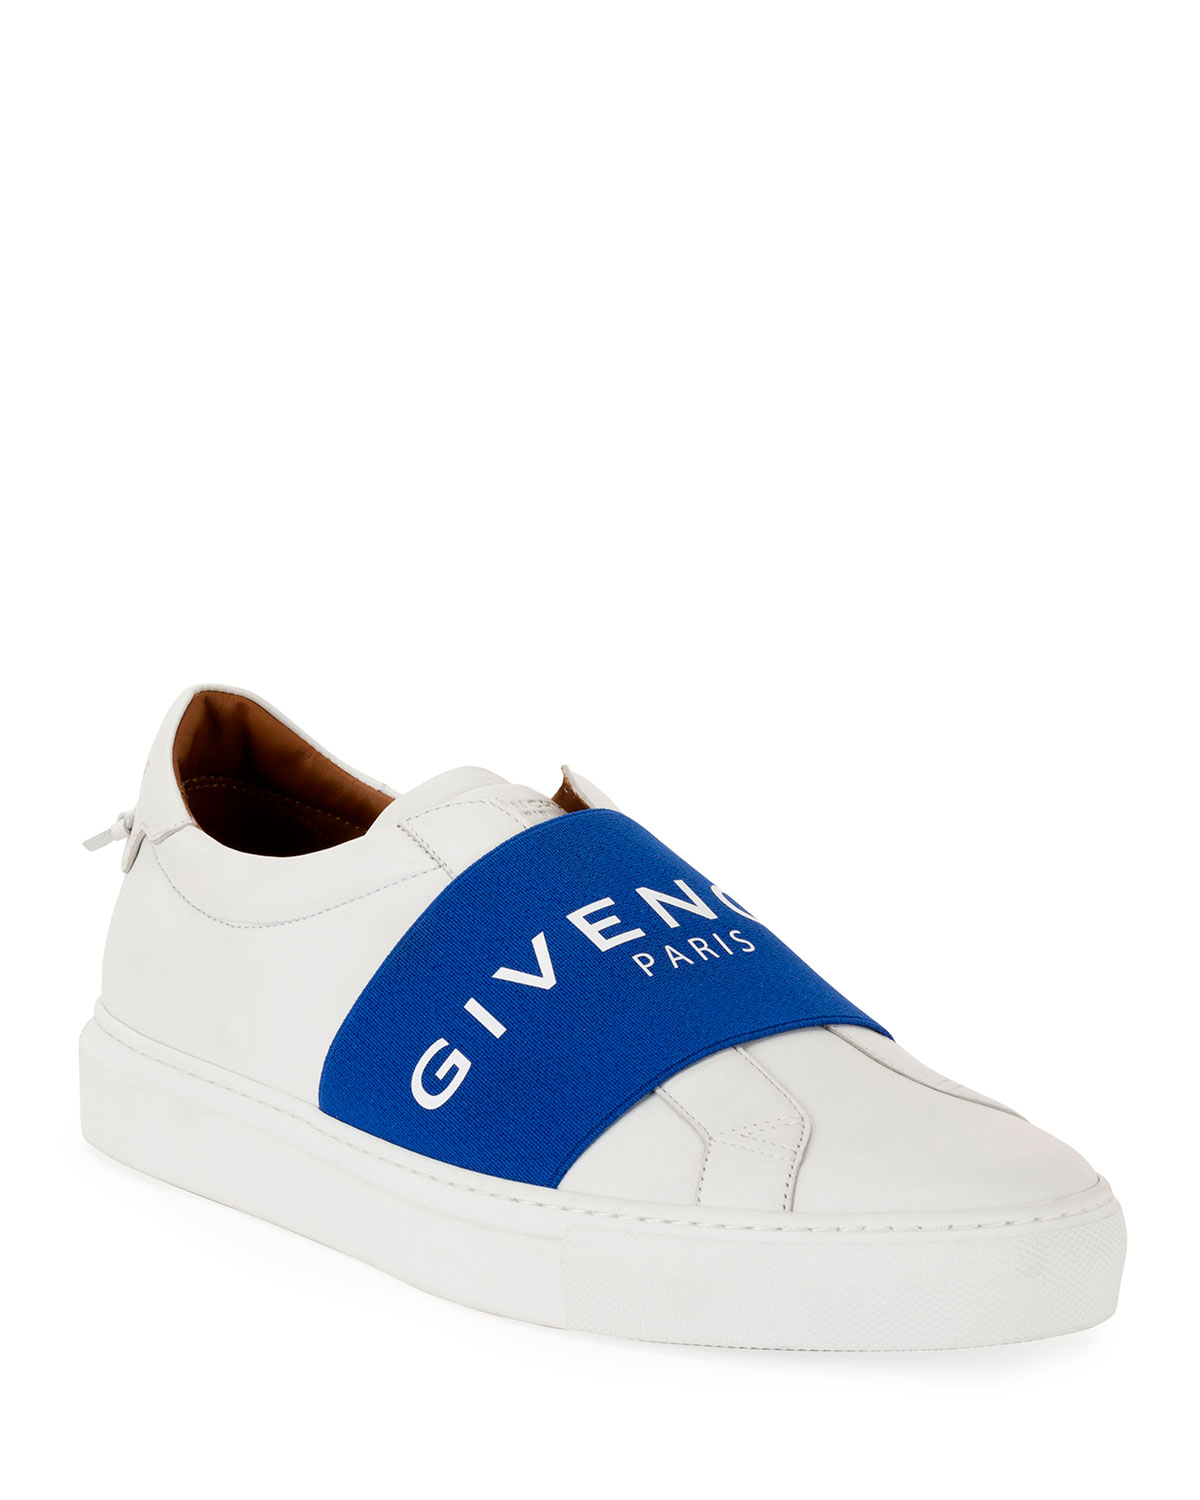 30e9215f9f23 Givenchy Men s Urban Street Elastic Slip-On Sneakers